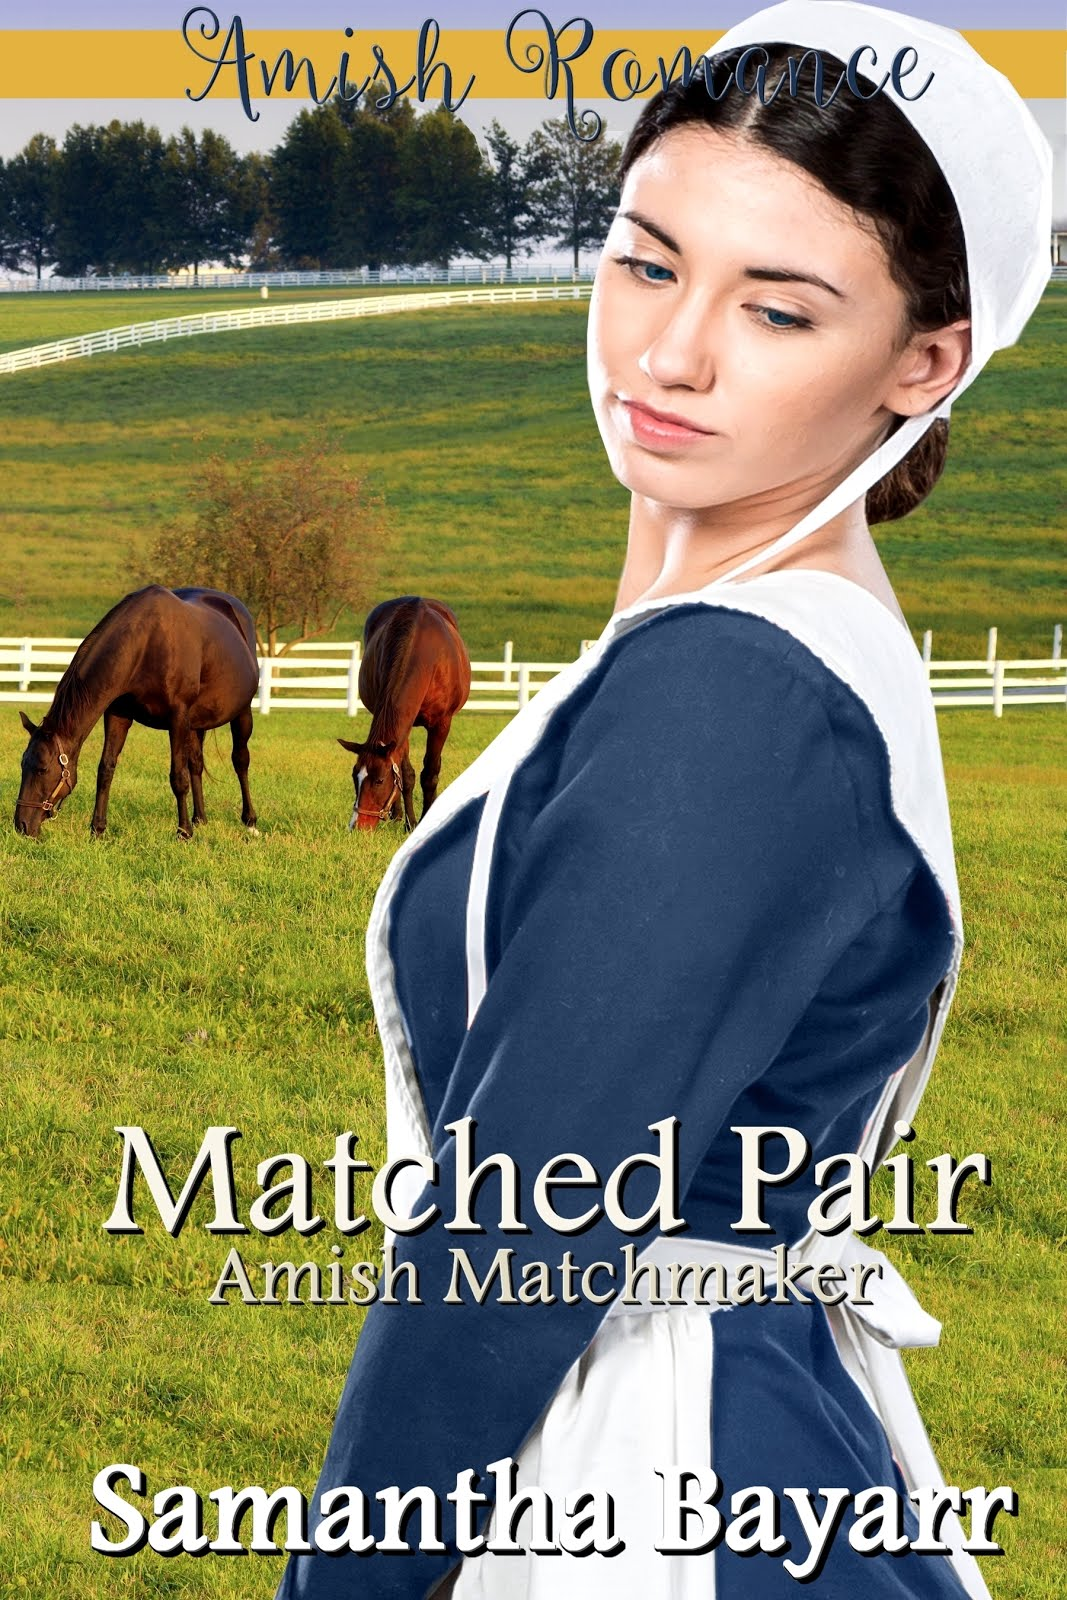 A Matched Pair: The Amish Matchmaker